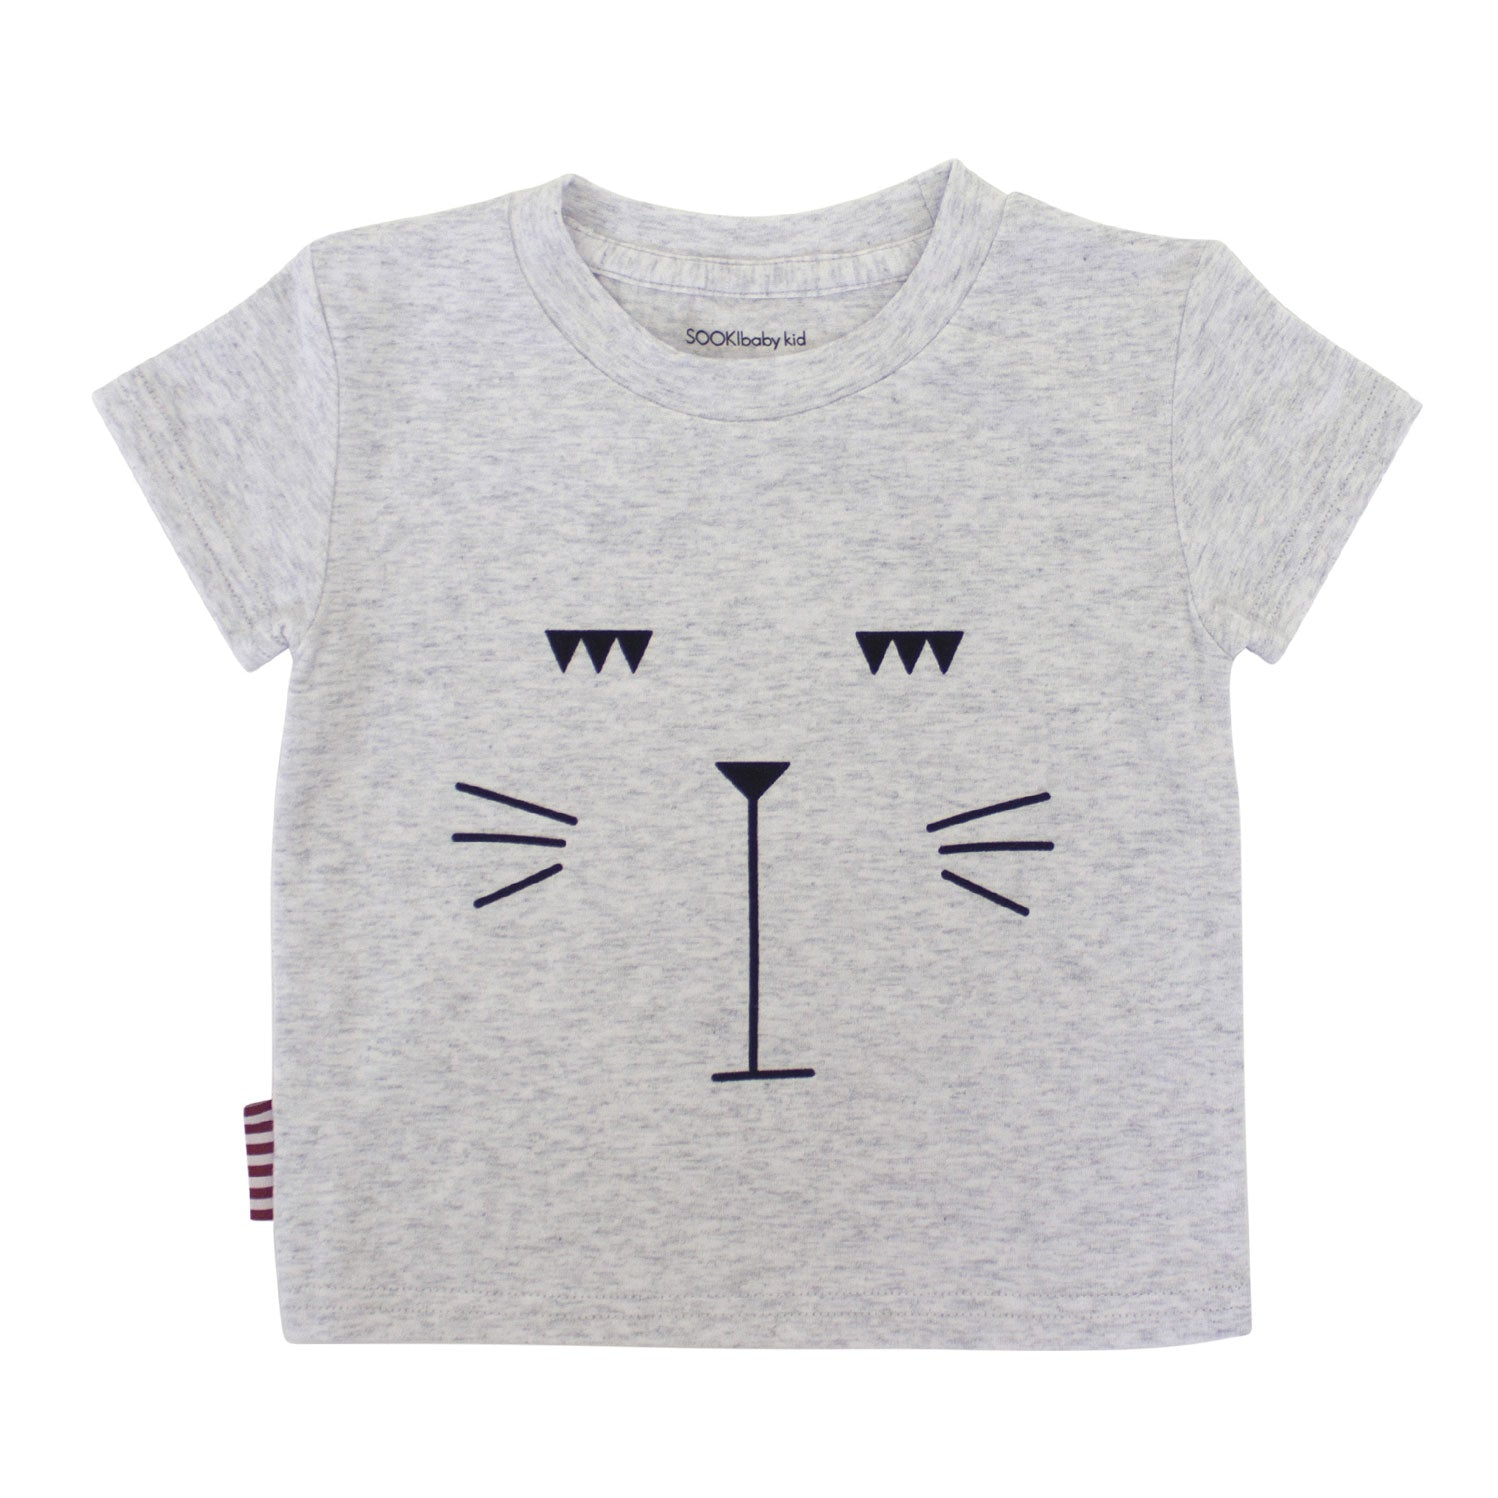 Tiger Stripe Toddler Tee